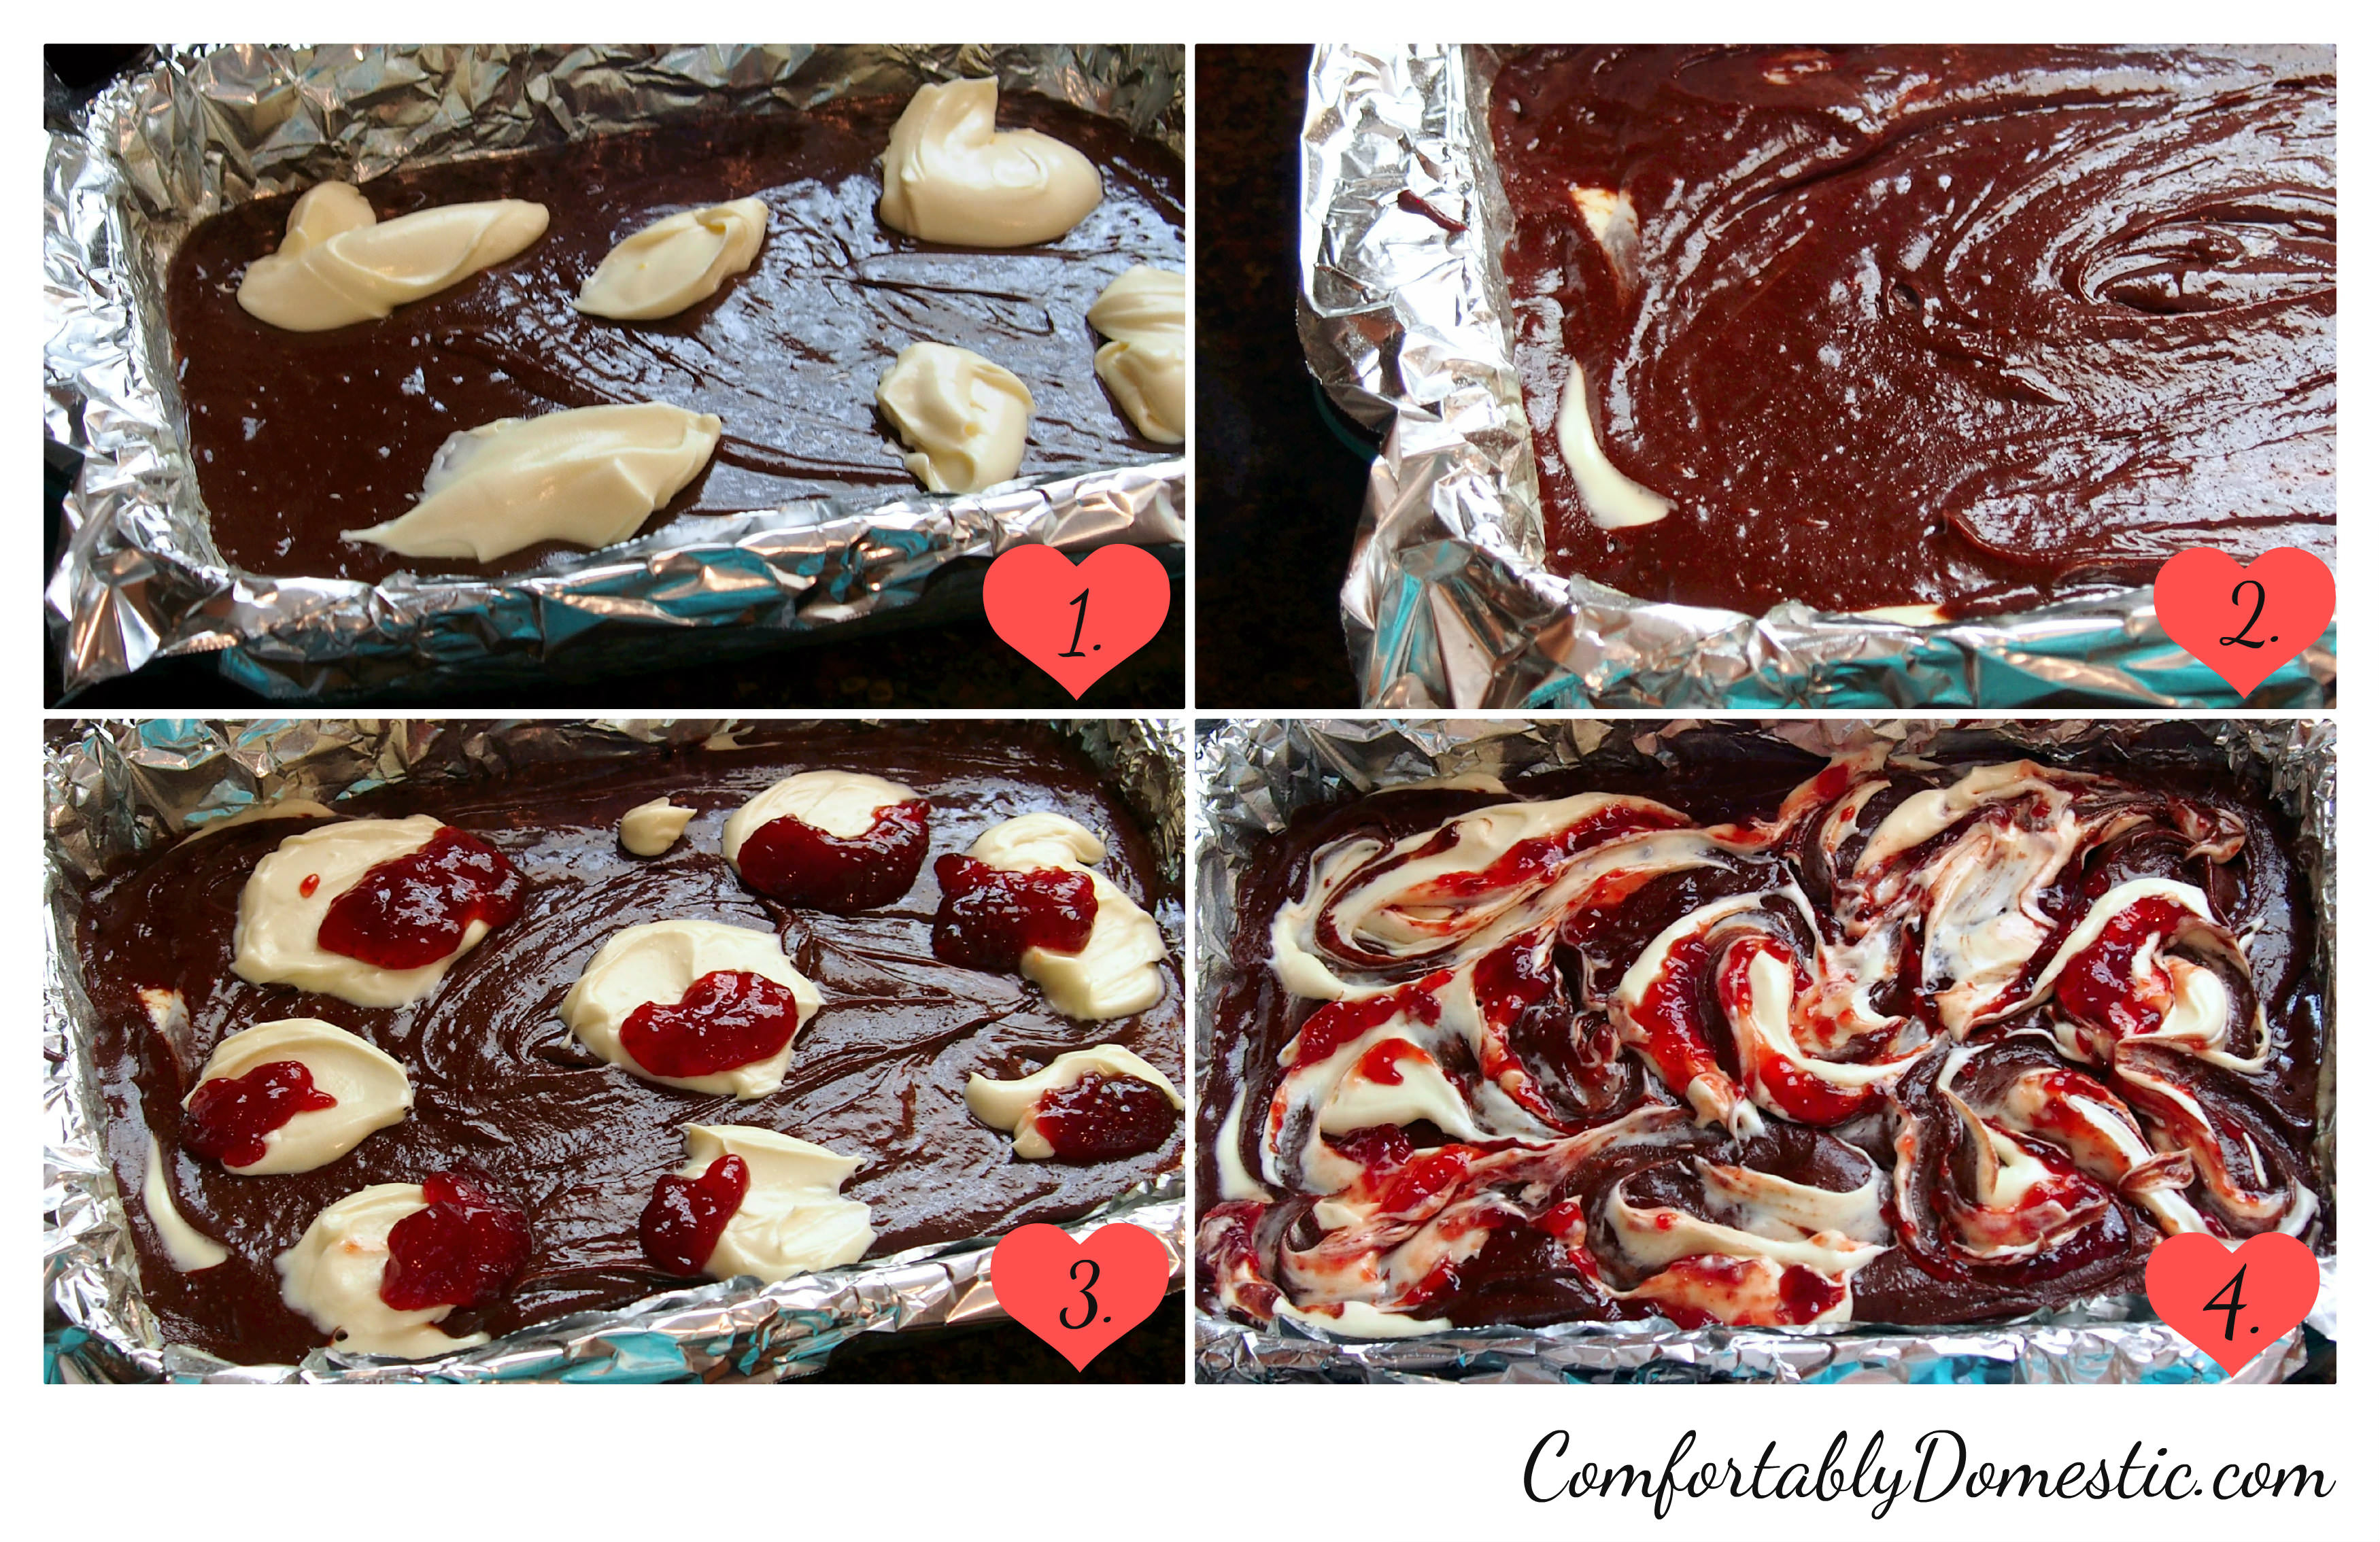 strawberrycheesecakebrownielayers via ComfortablyDomestic.com